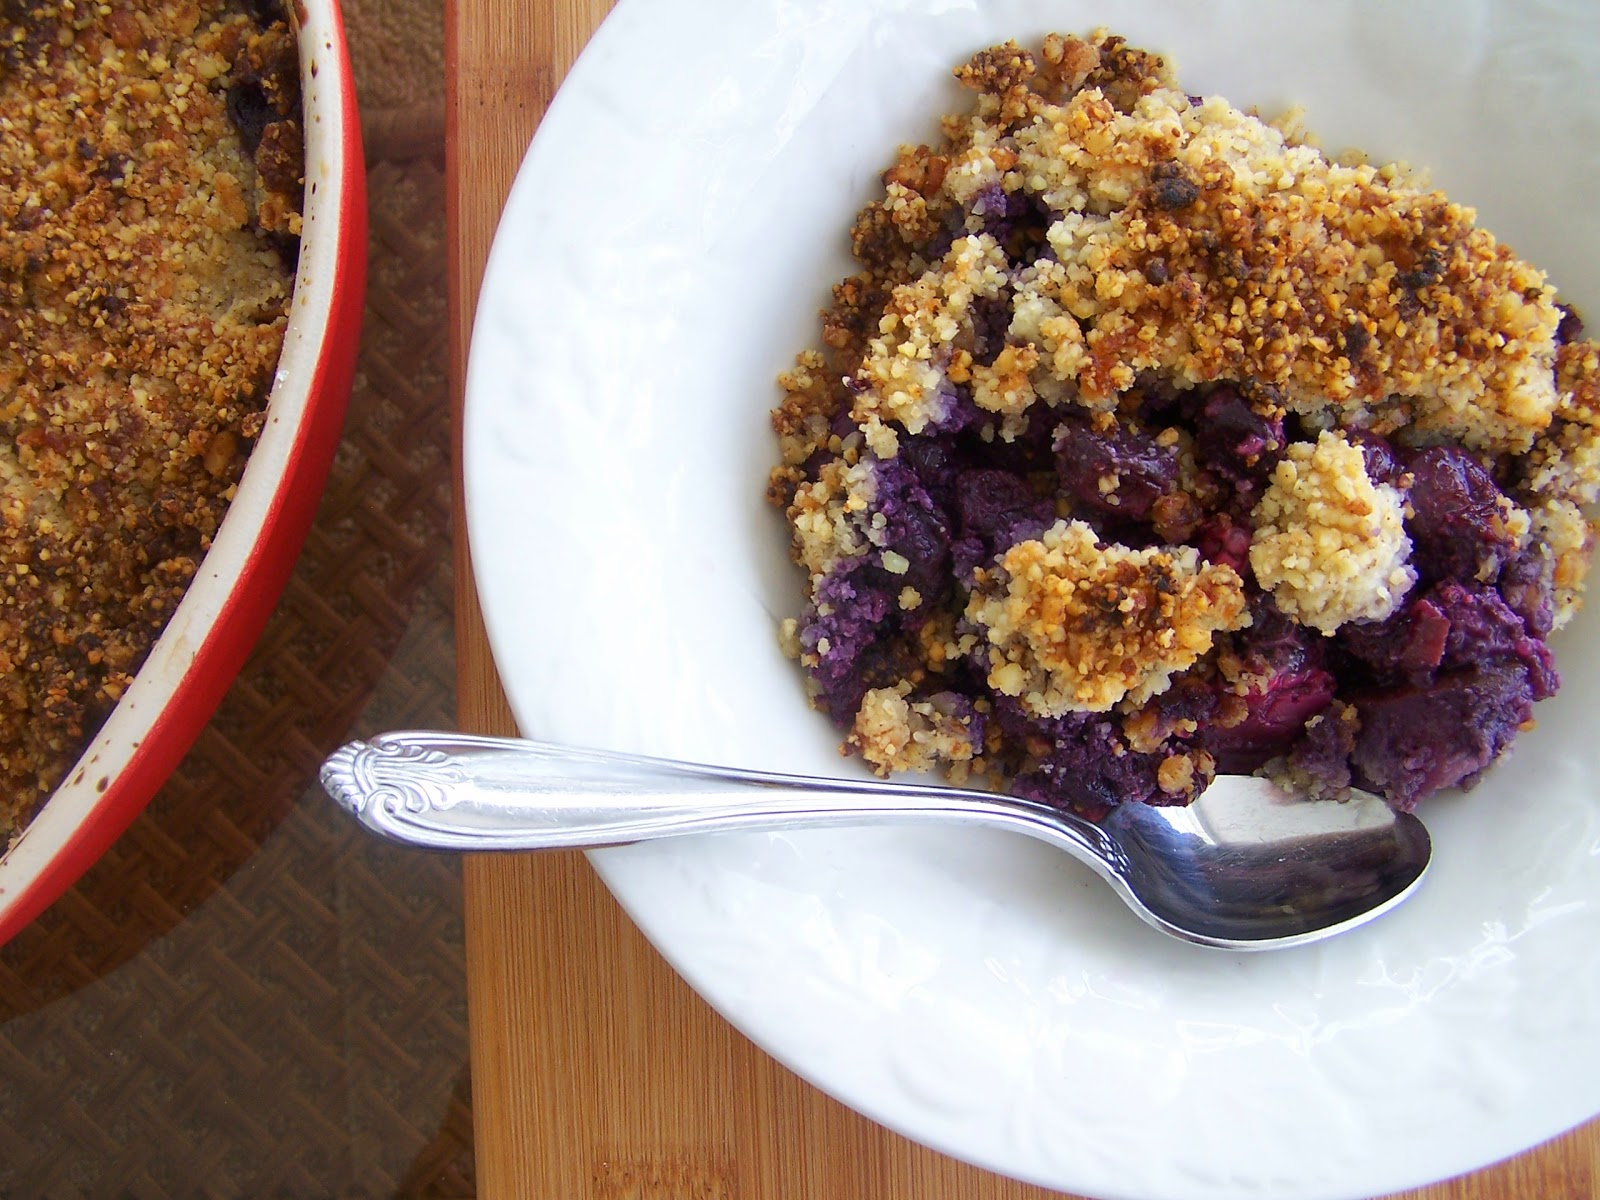 A Gluten Free Paleo Blueberry Crumble that's Low in Carbs!